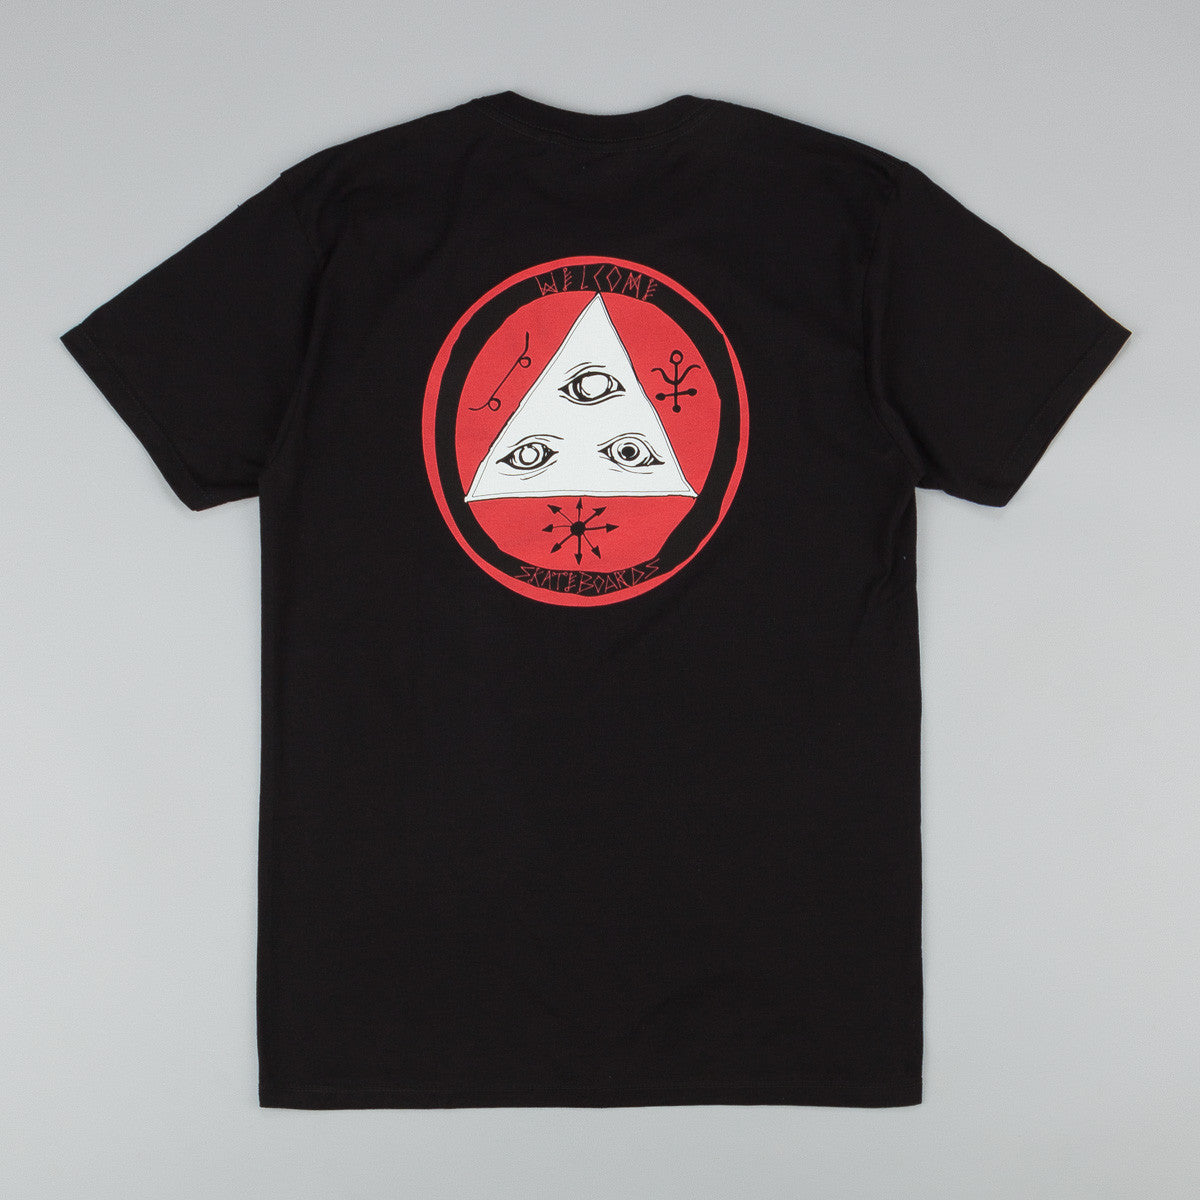 Welcome Talisman Tri-Colour T-Shirt - Black / Red / White